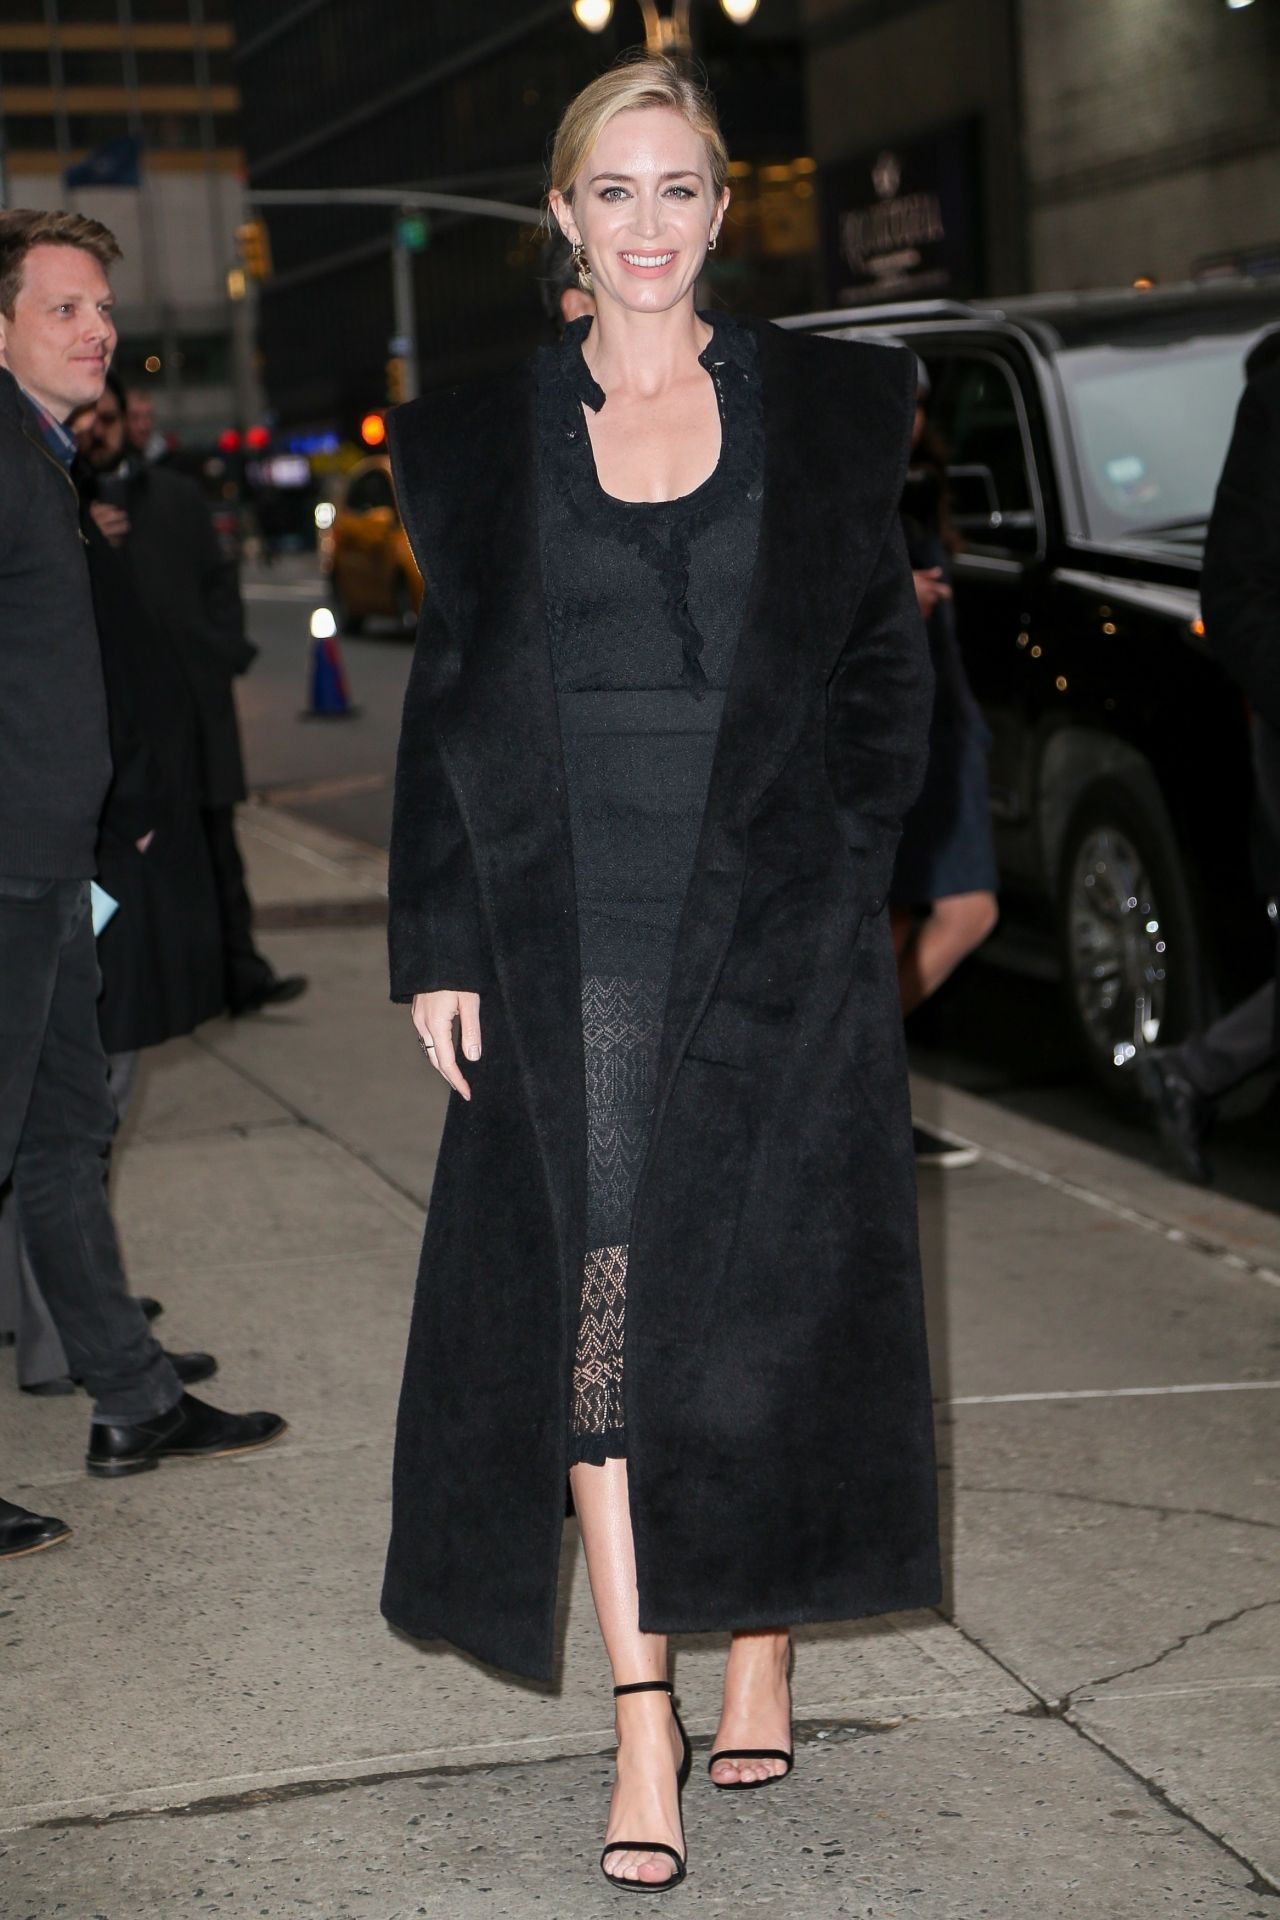 emily-blunt-outside-the-late-show-with-stephen-colbert-in-nyc-03-29-2018-1.jpg